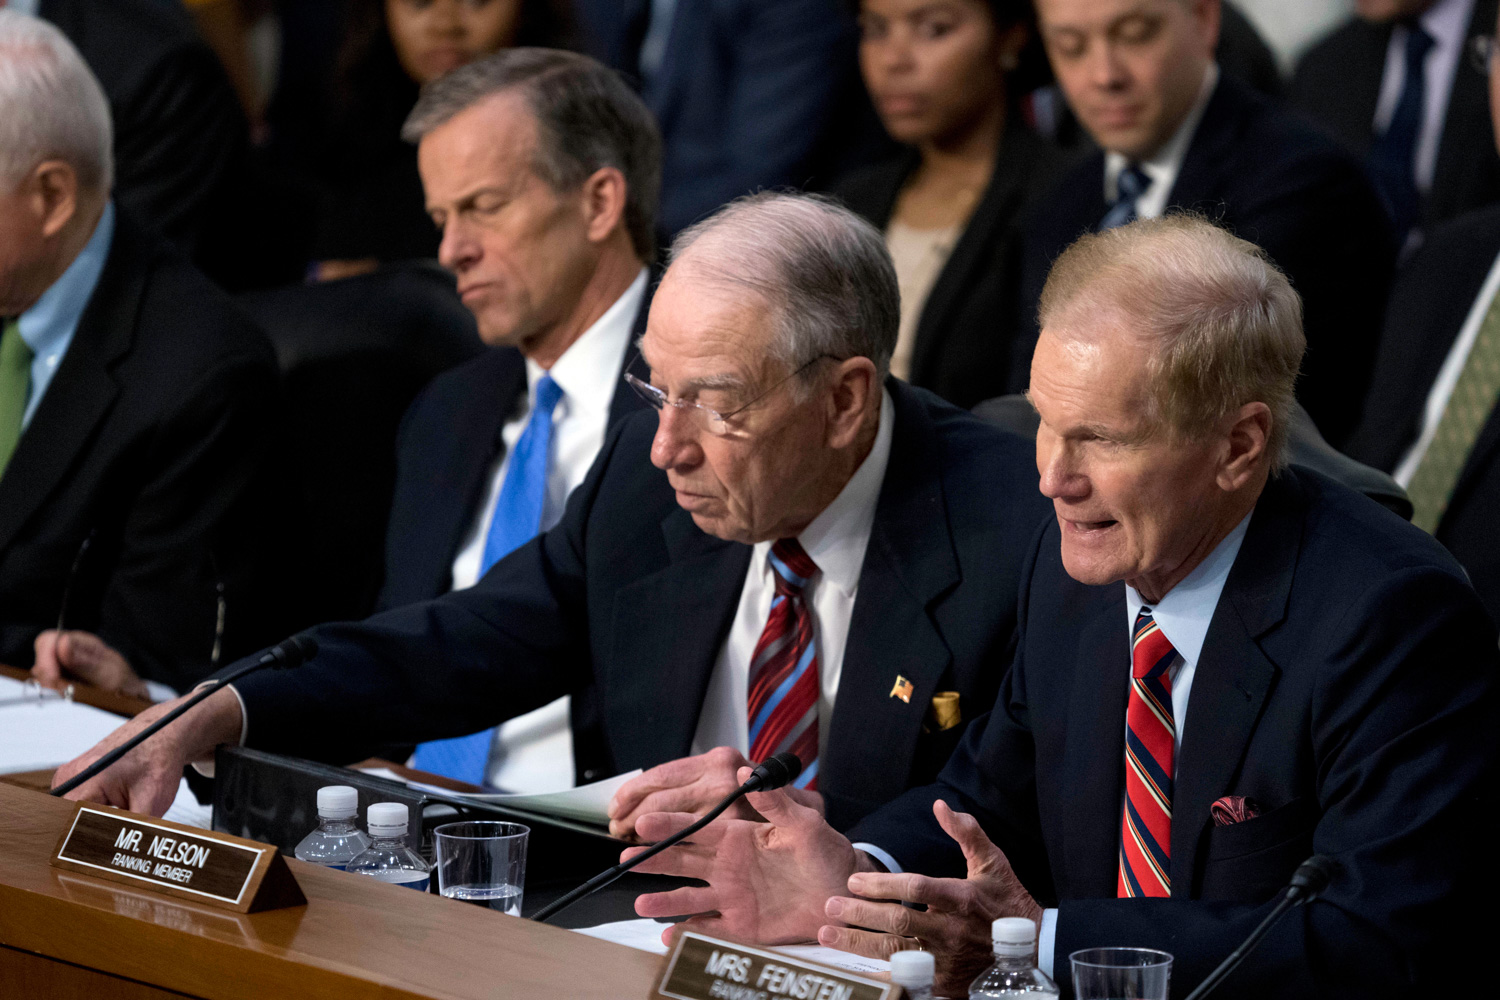 "<div class=""meta image-caption""><div class=""origin-logo origin-image none""><span>none</span></div><span class=""caption-text"">Sen. Bill Nelson, D-Fla., right, accompanied by Sen. John Thune, R-S.D., left, and Sen. Chuck Grassley, R-Iowa, second from left, speaks as Facebook CEO Mark Zuckerberg testifies. (Andrew Harnik/AP Photo)</span></div>"